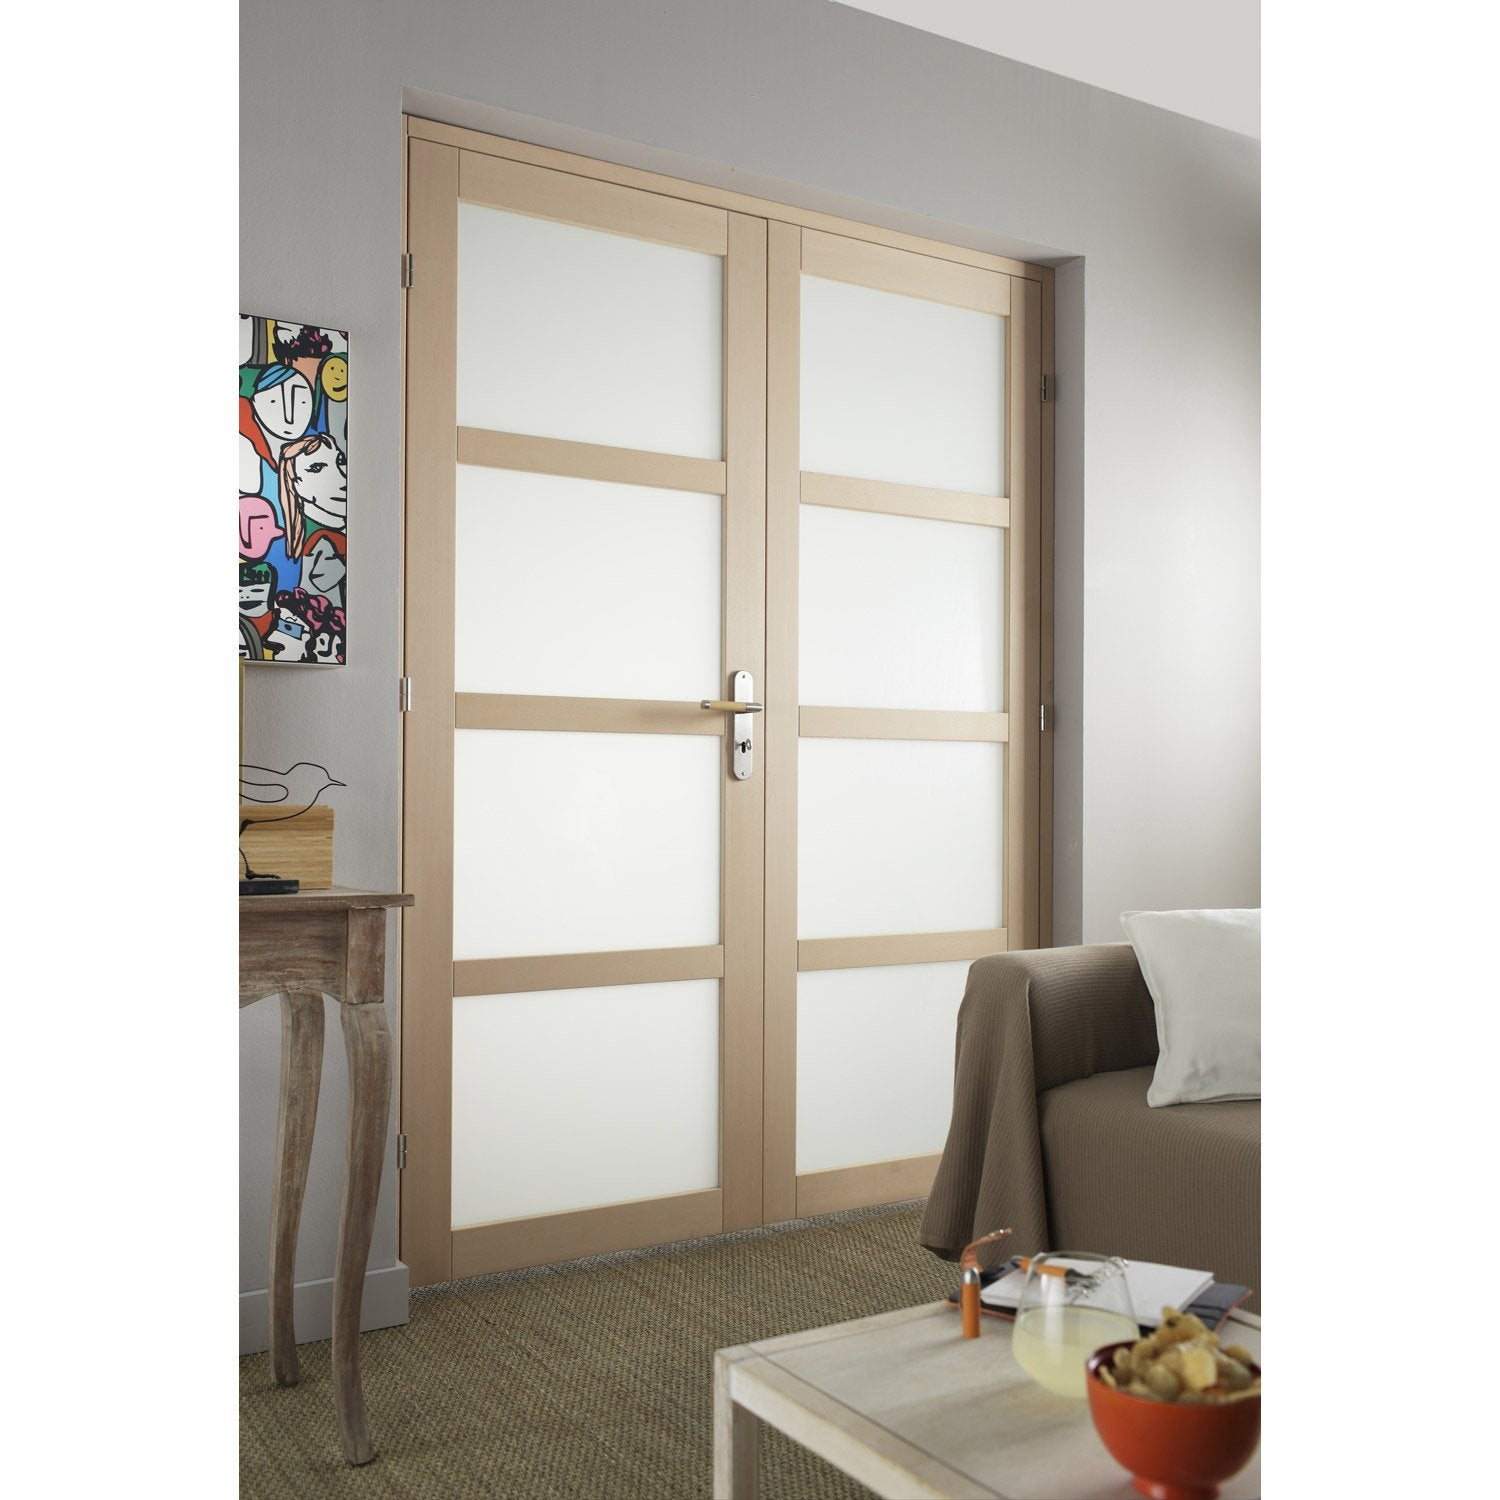 Porte accordeon interieur leroy merlin fashion designs Bloc double porte vitree interieure